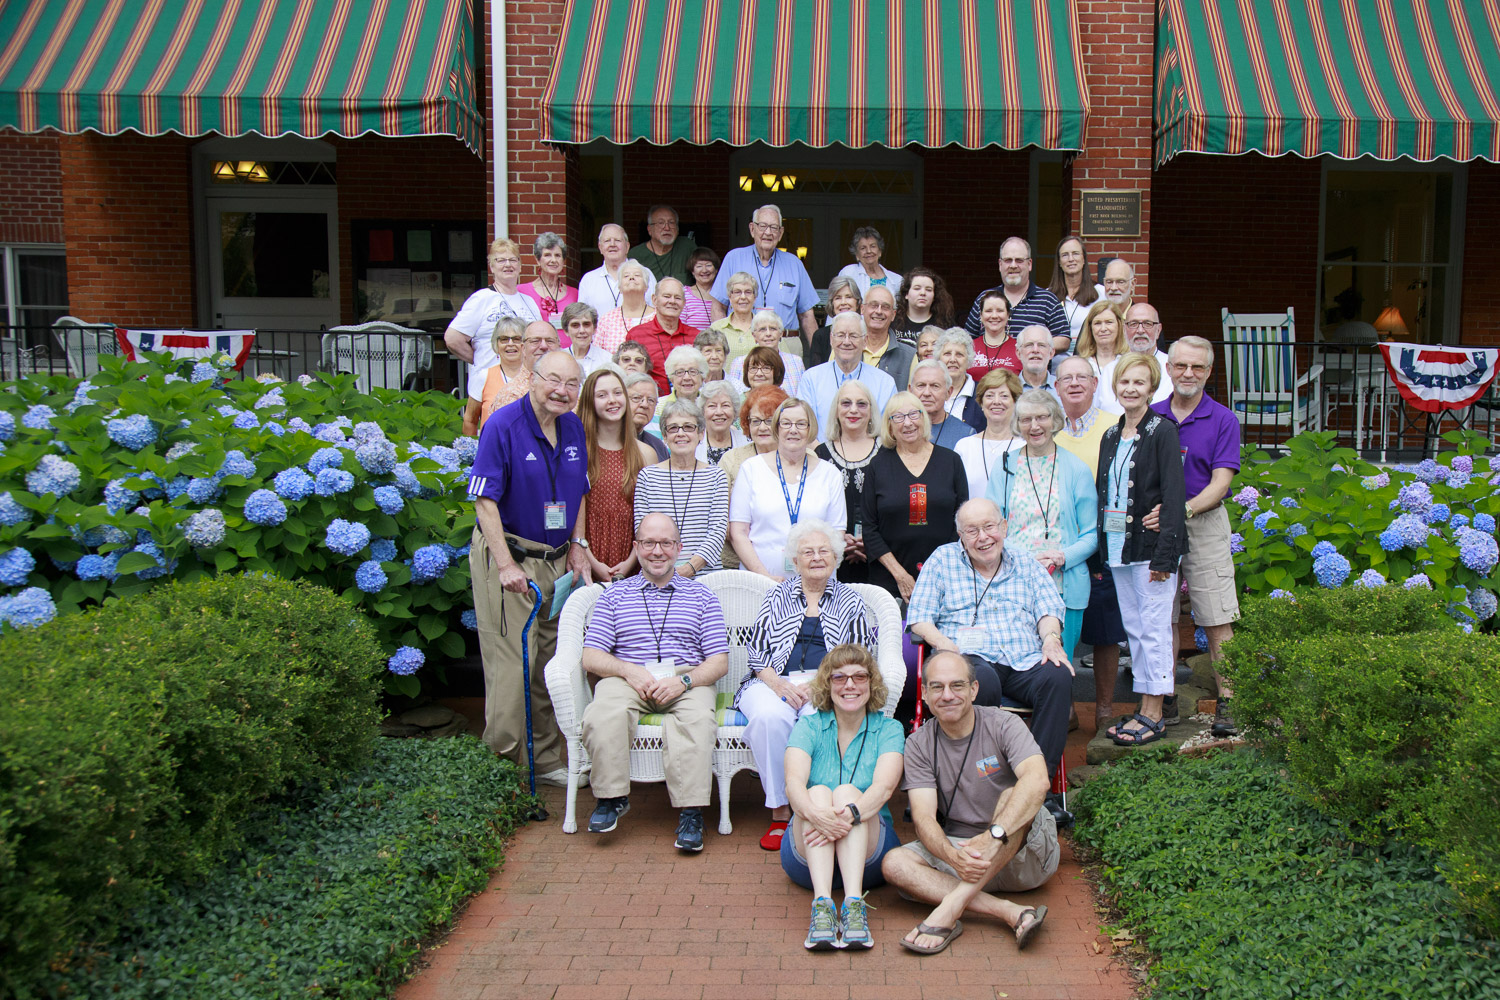 Group portrait of Chautauquans at Presbyterian House, Week 4, 2017 at the Chautauqua Institution. We were all friends and colleagues, dining together and having wonderful conversations.